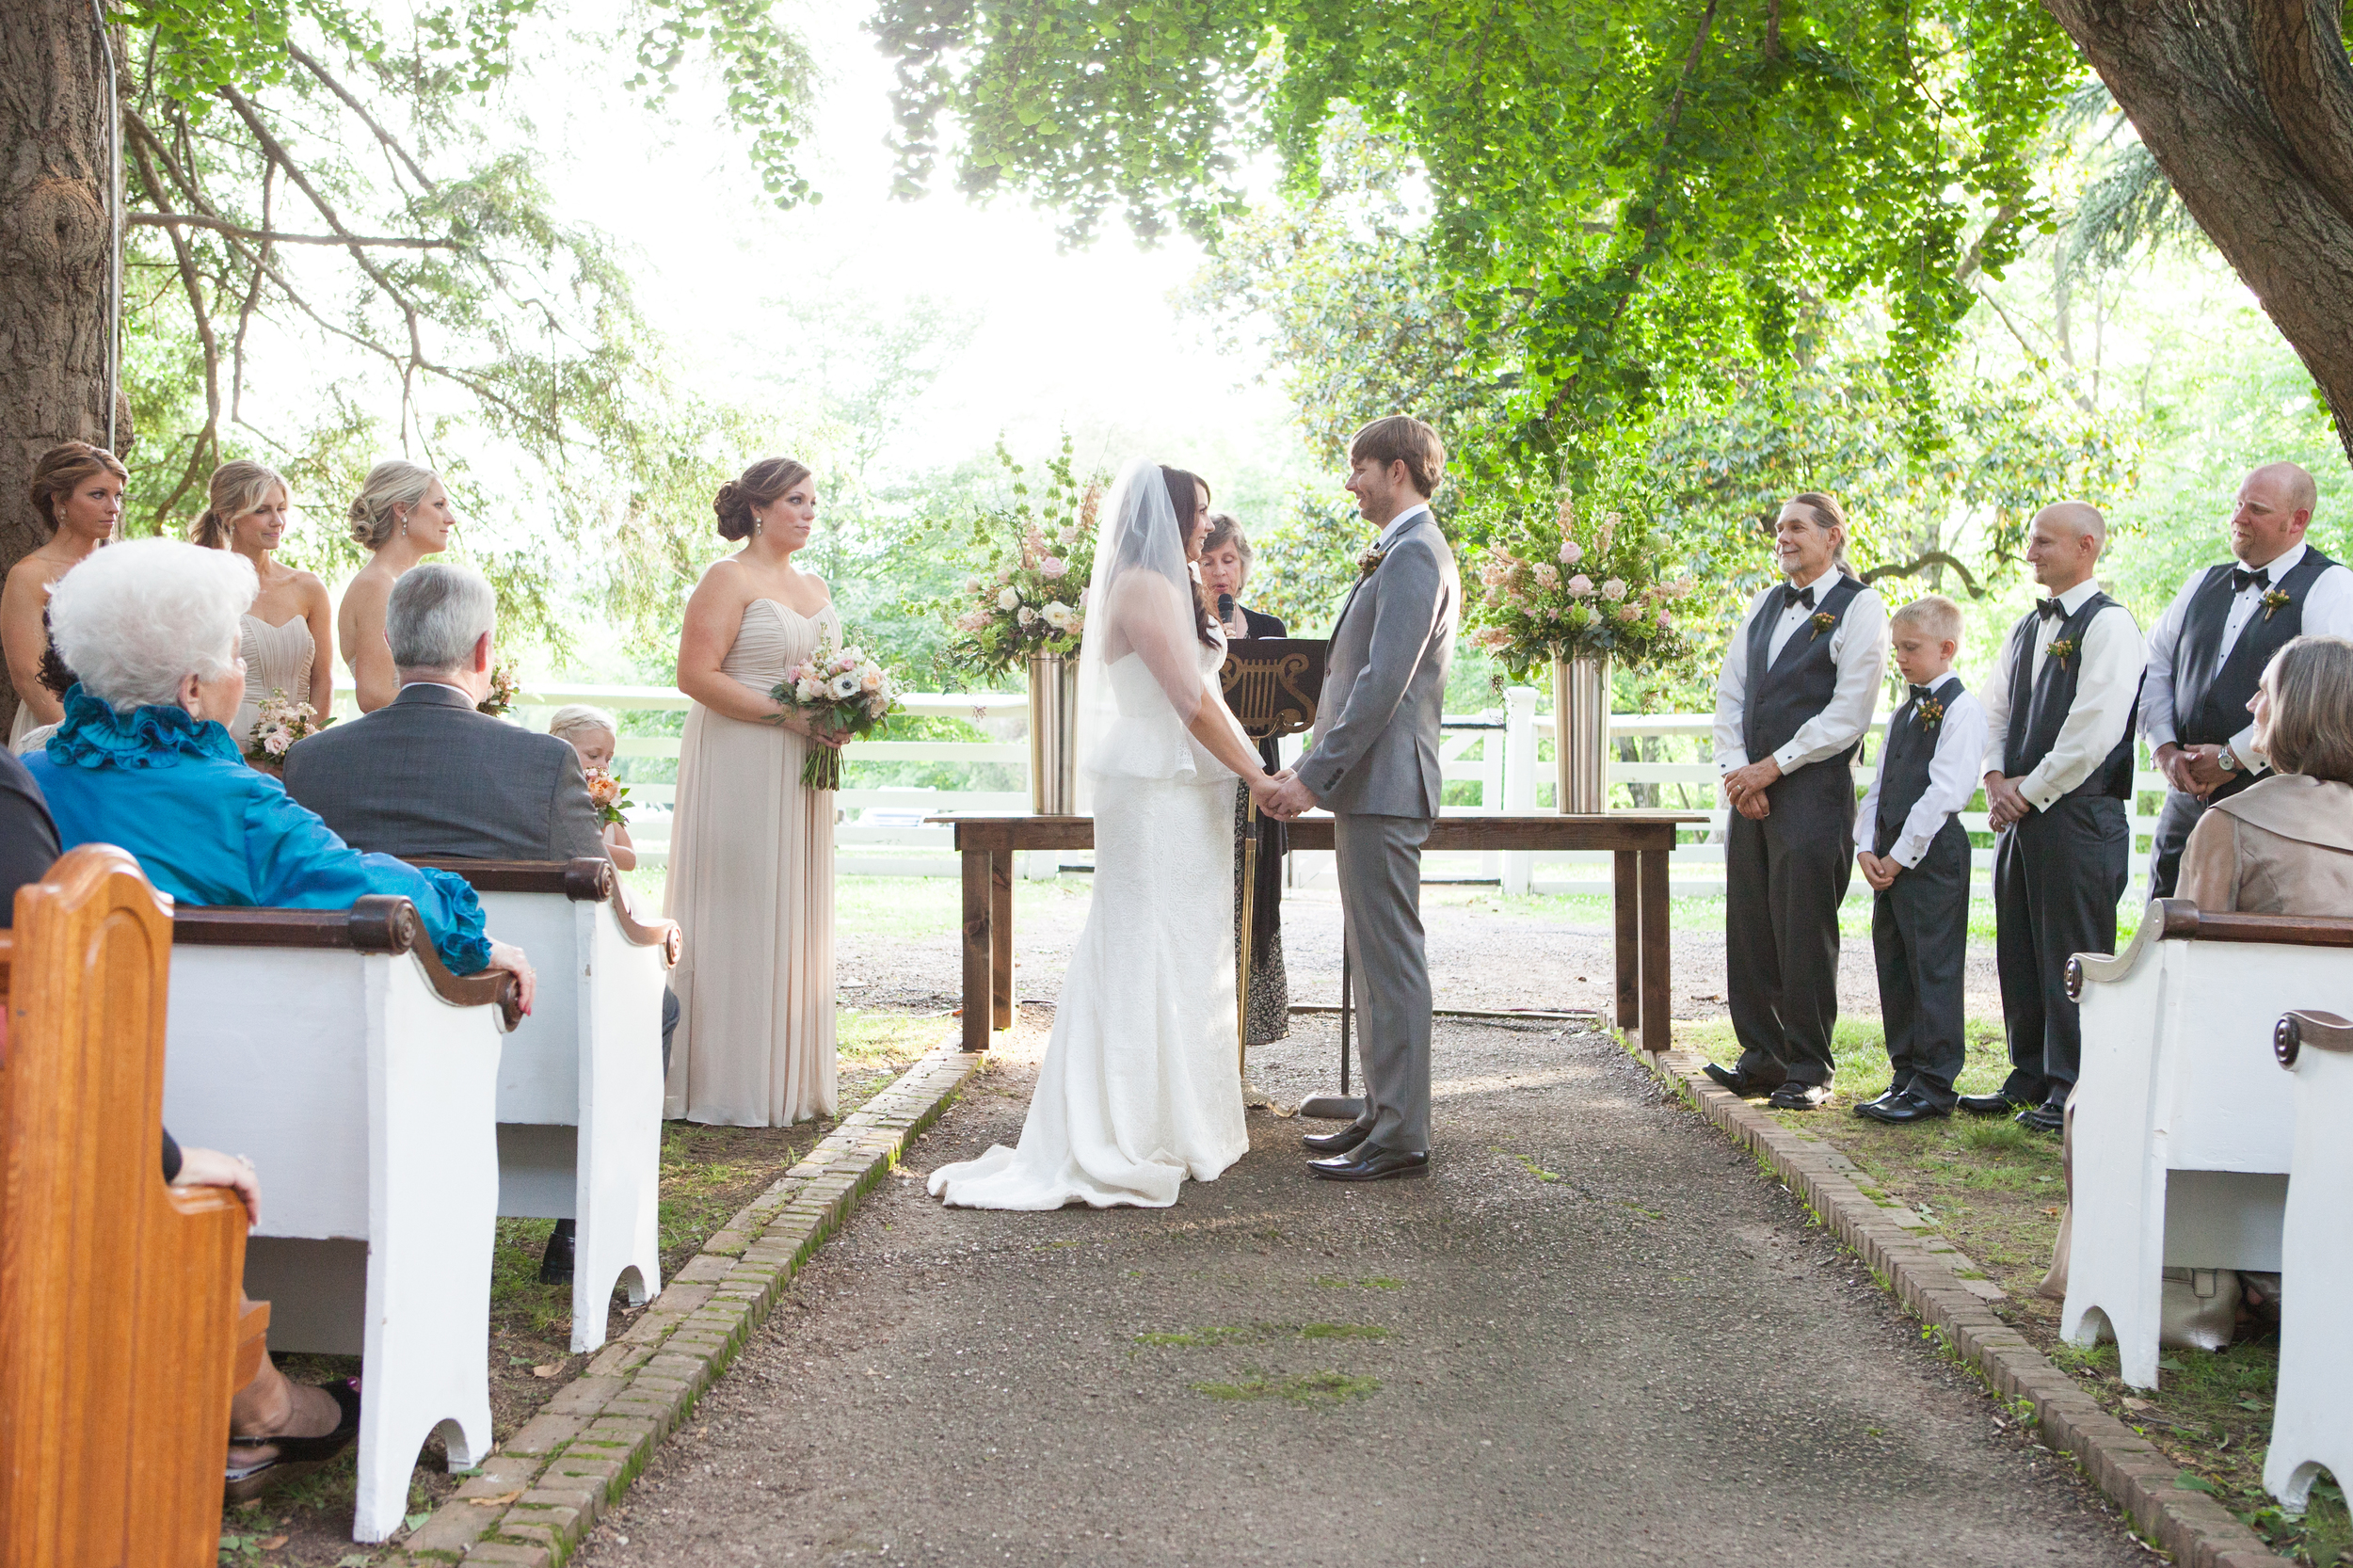 Such a gorgeous Tennessee wedding with Church pews! www.rentpews.com photo by brookeboling.com